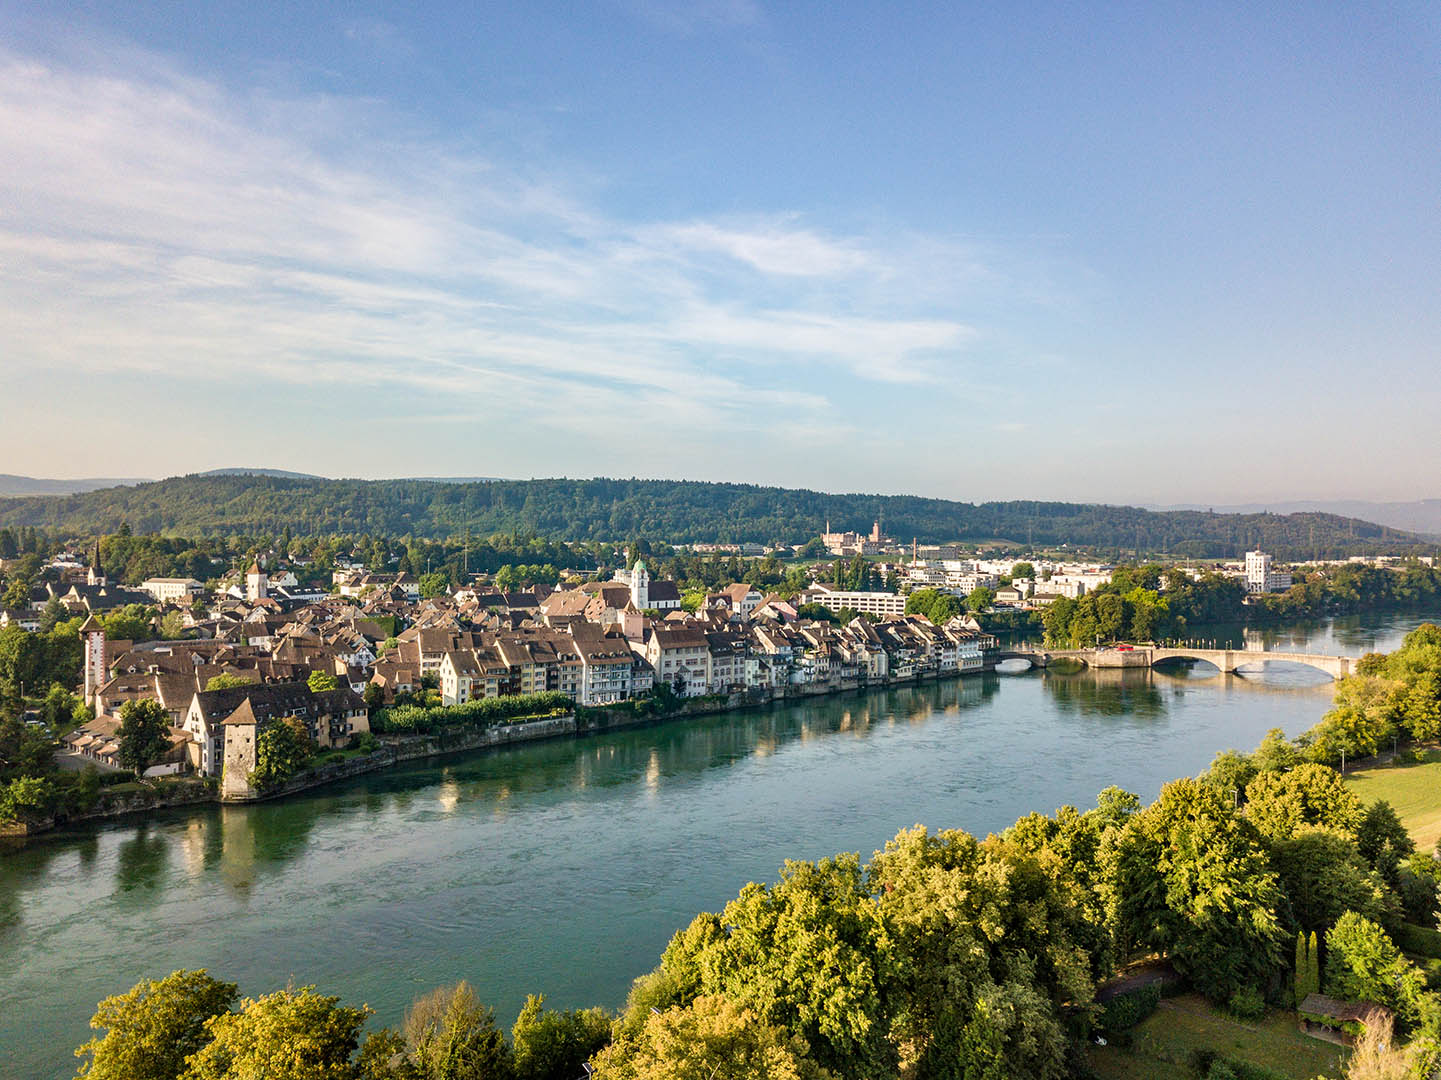 Rheinfelden: The little town with the long memory, Discover Germany magazine